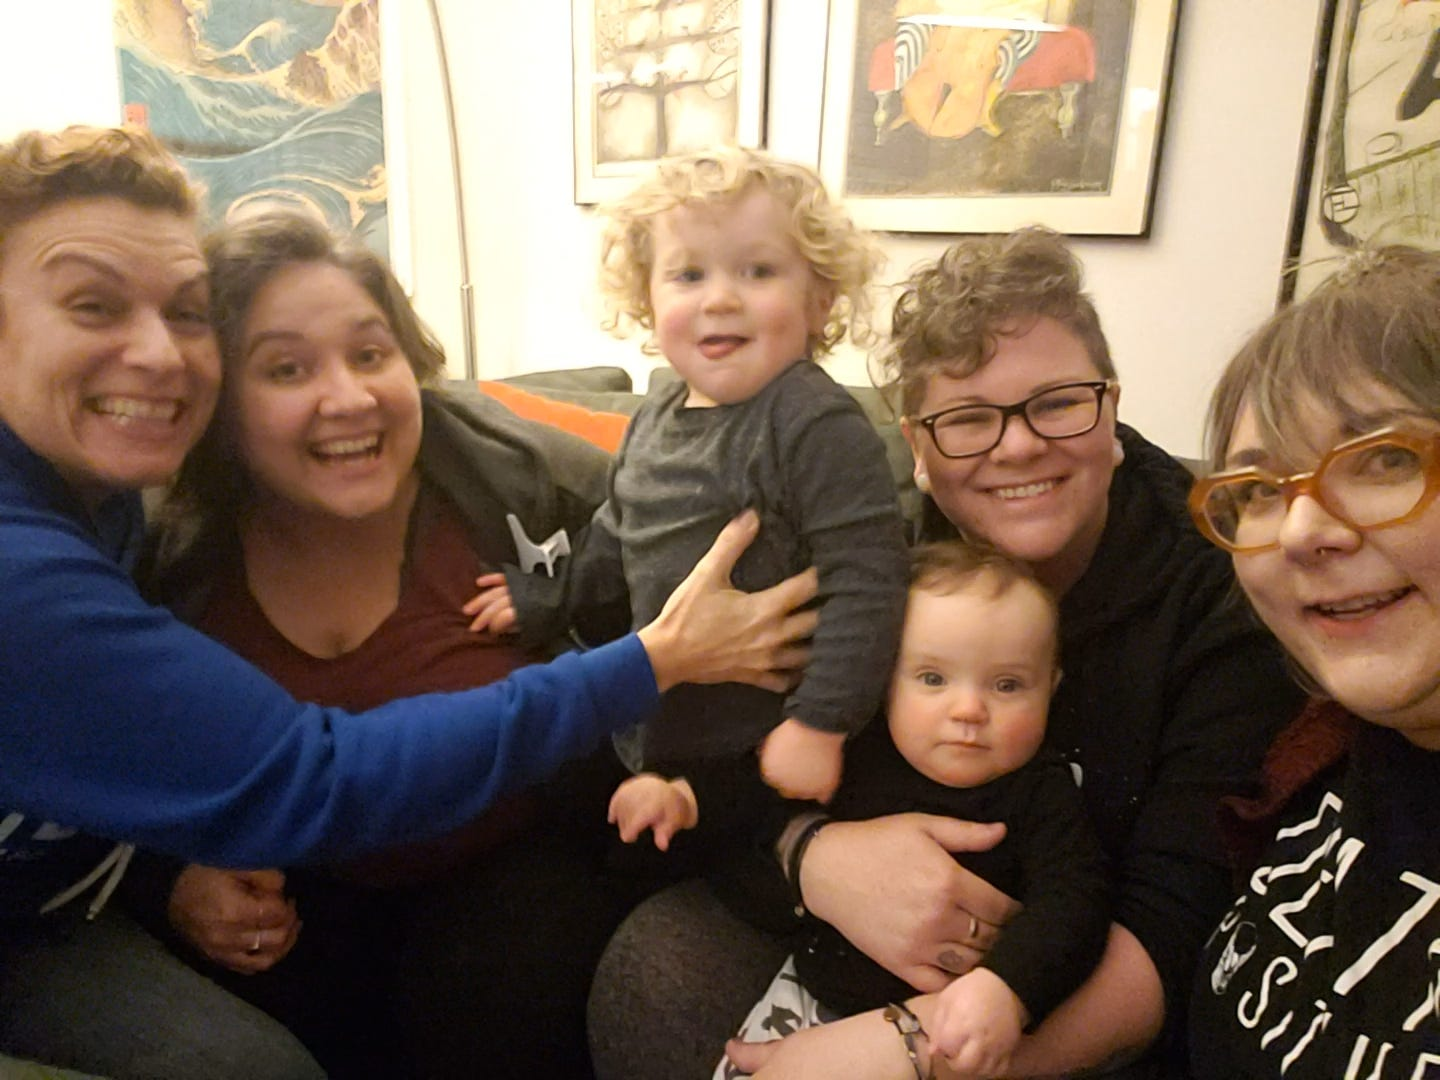 """""""I'm just grateful that without saying anything we knew that we needed to tighten up that bond right now to help each other get through things,"""" Jess said. Jess, far right, joins, from left, Leah Harris, Des's wife Felicidad Garcia, and Des. The kids, Gus and Theo, are Des and Fel's."""